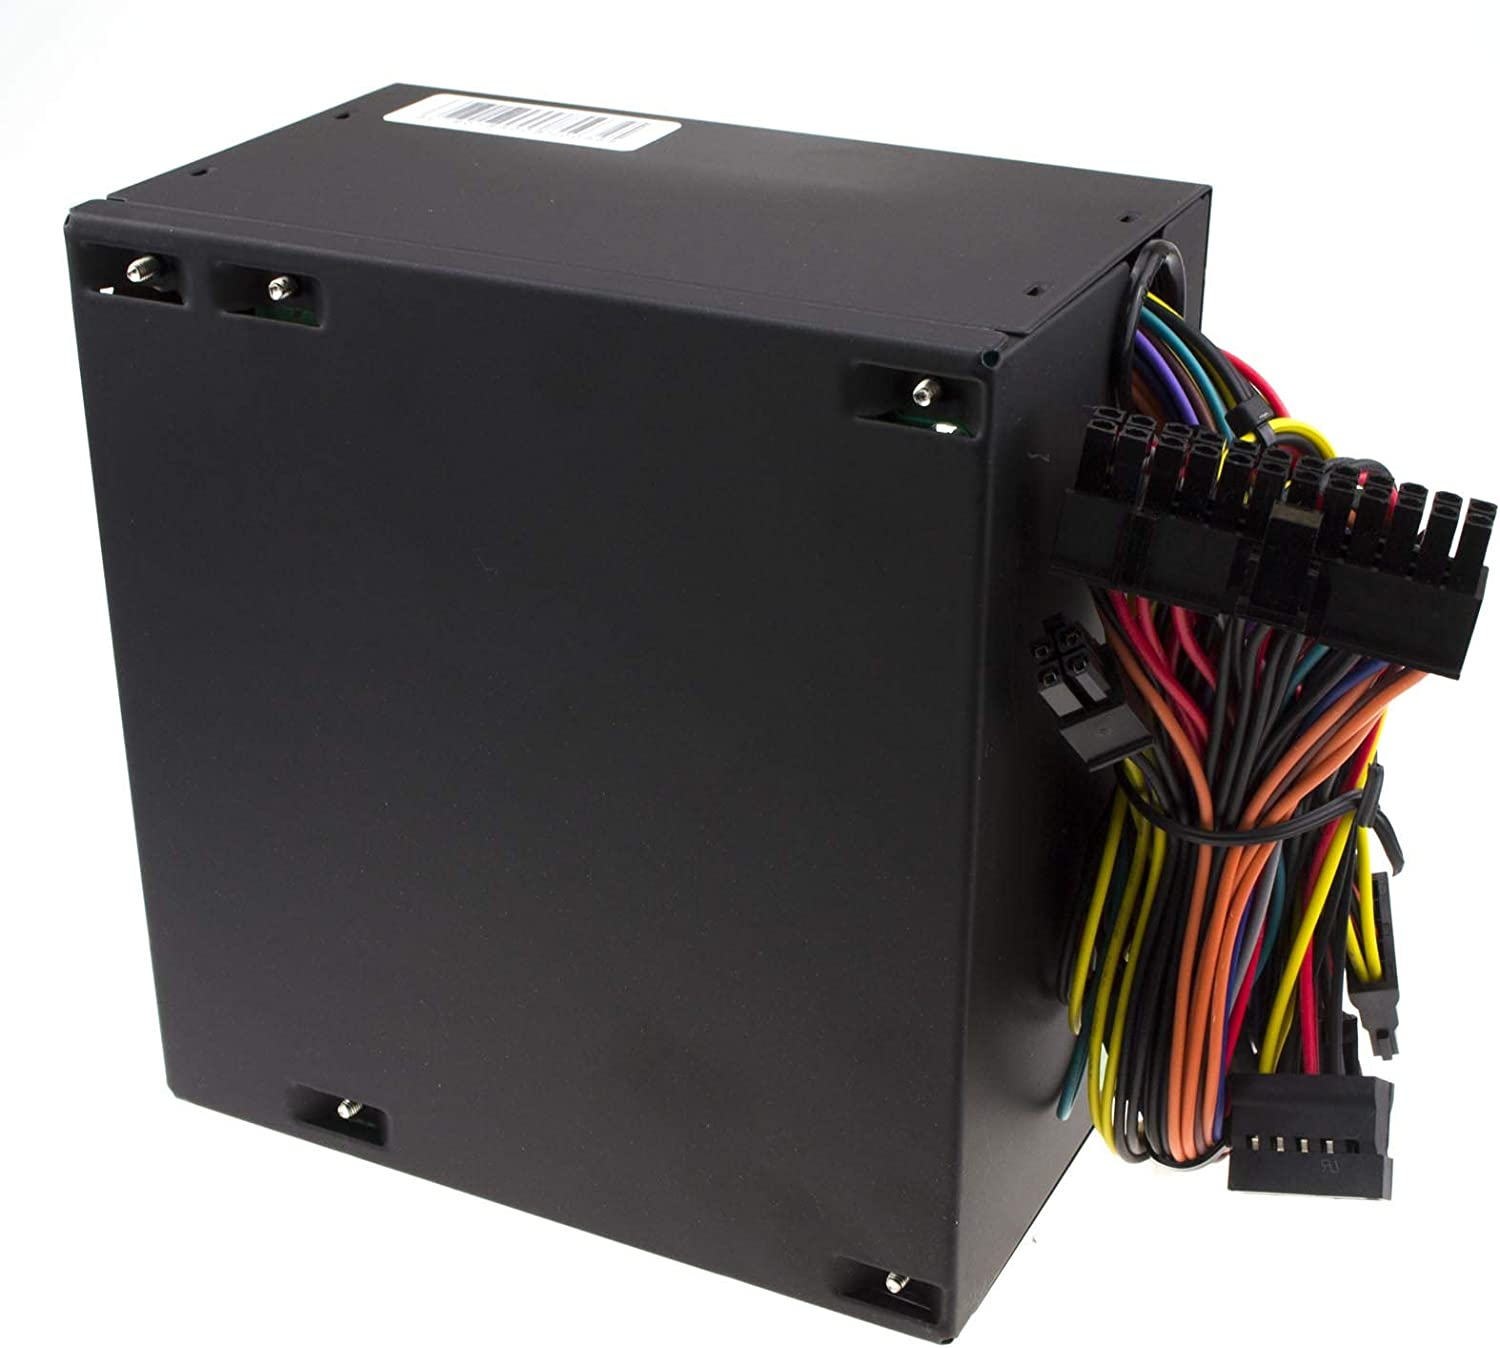 kenable 500W PC Case Tower ATX Power Supply Unit PSU with PFC Protection